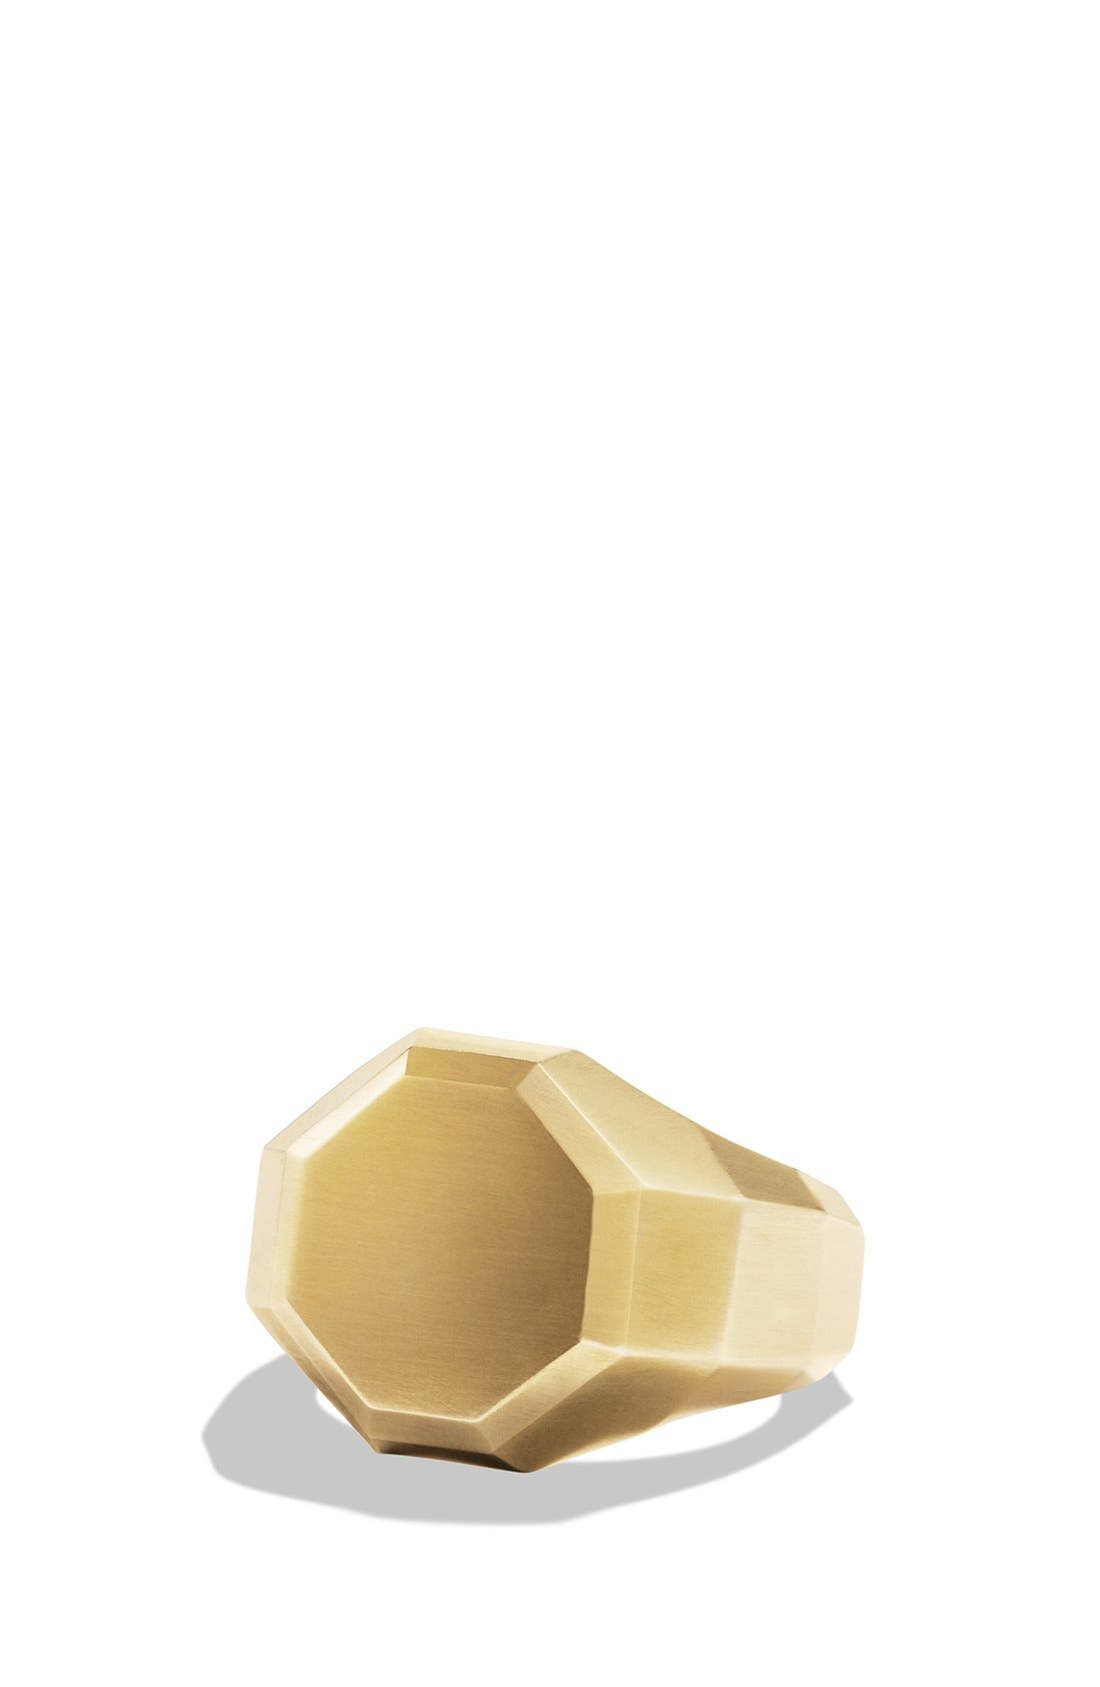 'Faceted' Signet Ring with 18k Gold,                             Main thumbnail 1, color,